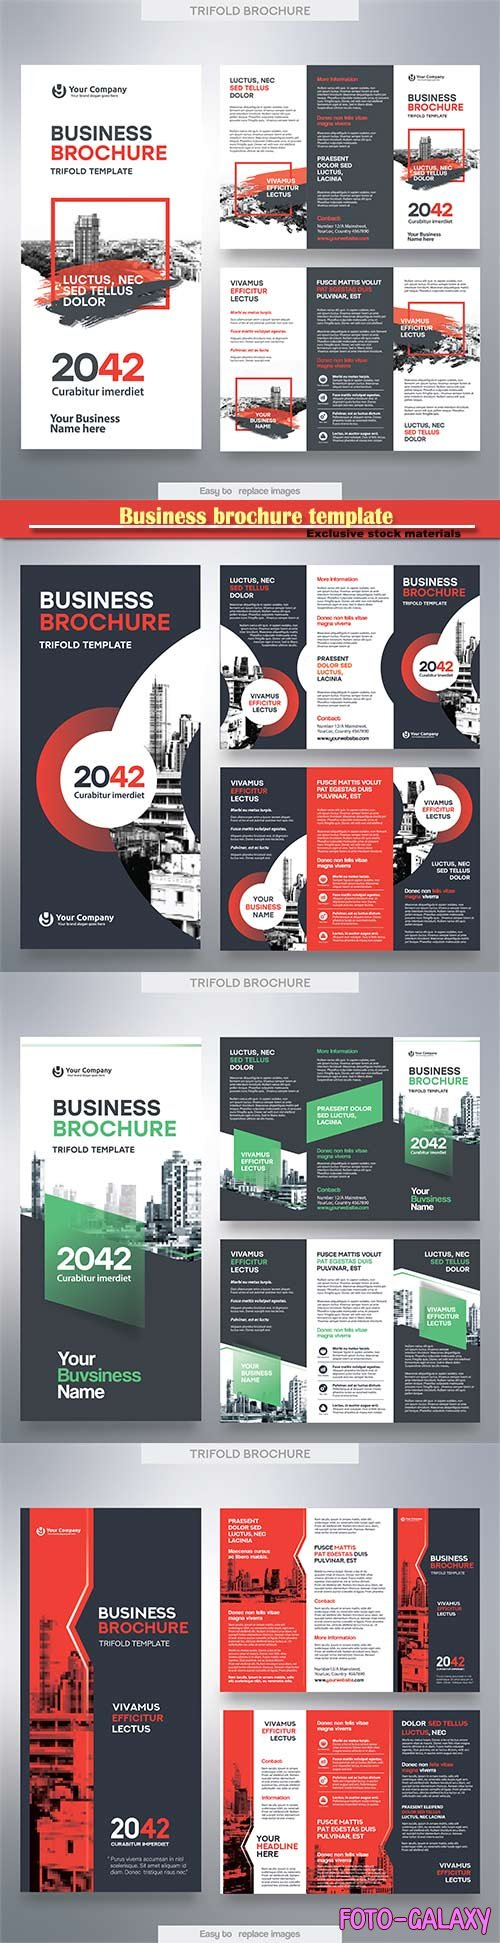 Business brochure template in tri fold layout vector design